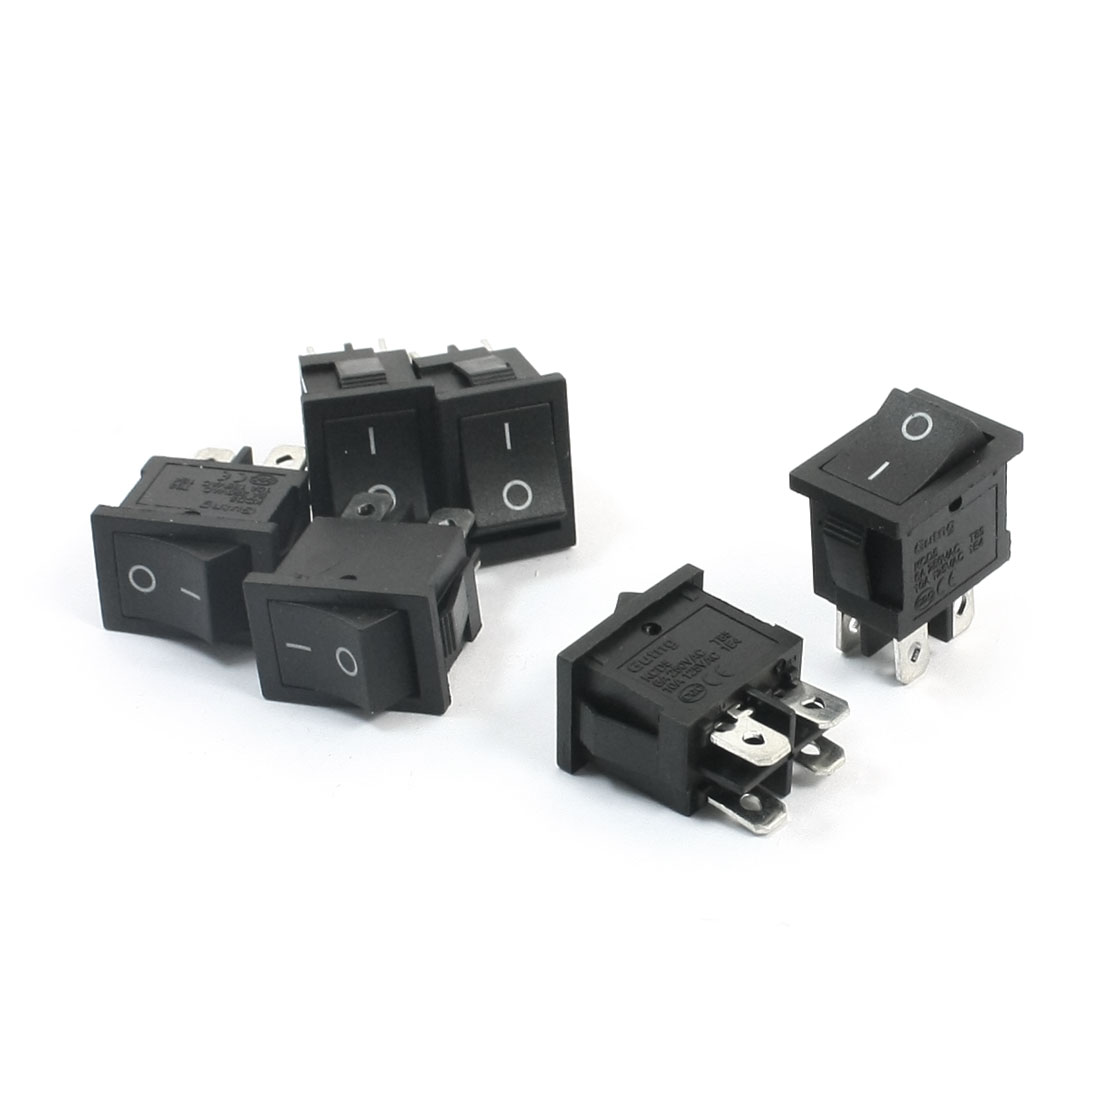 6Pcs DPST 2 Position ON/OFF 4 Soldering Pin Snap In Black Button Rectangle Boat Rocker Switch AC250V 6A AC125V 10A 15mmx21mm